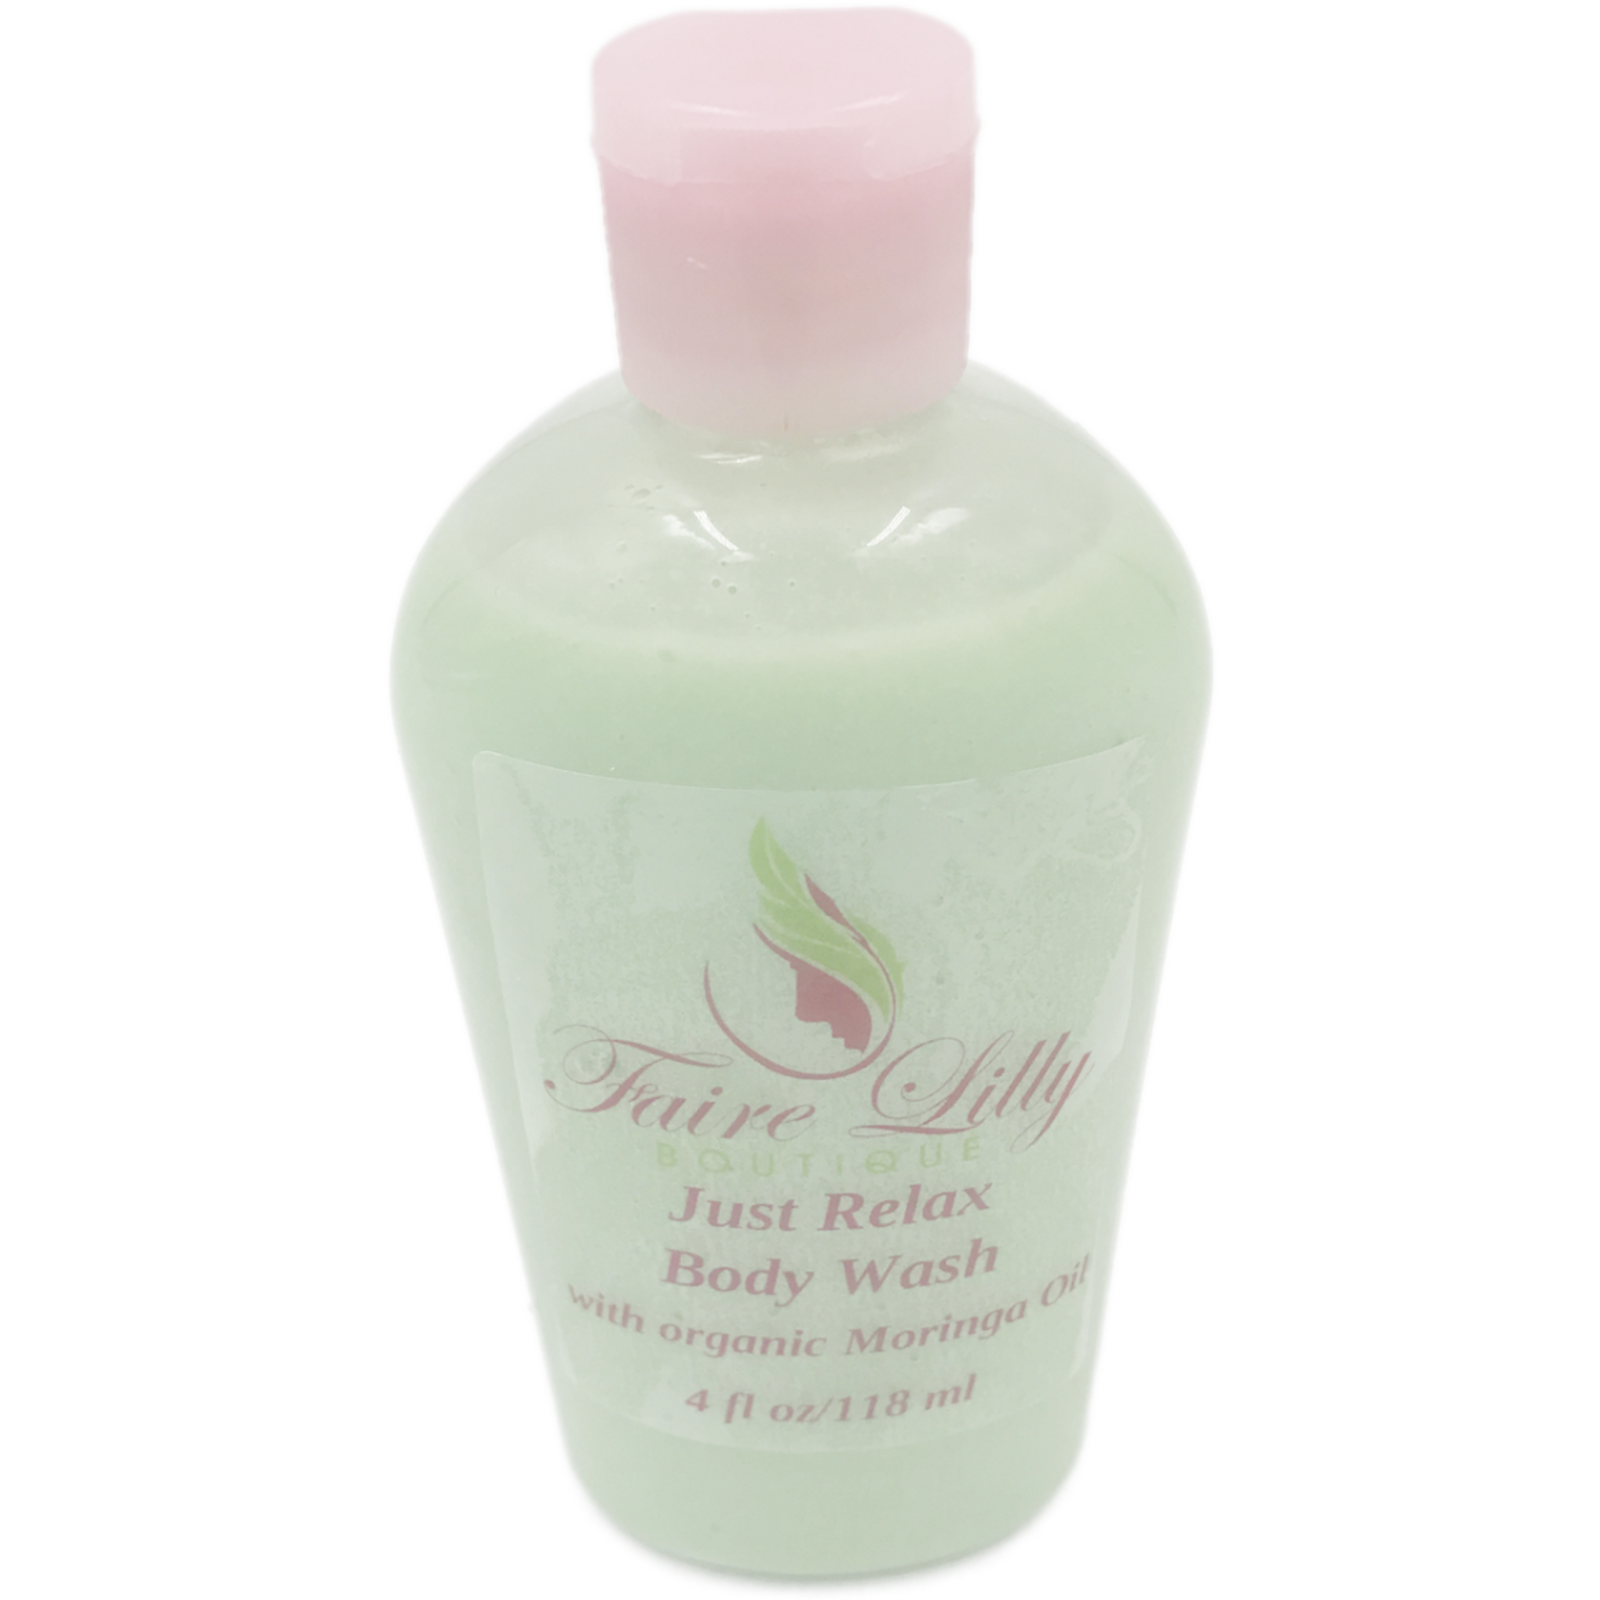 Just Relax Body Wash